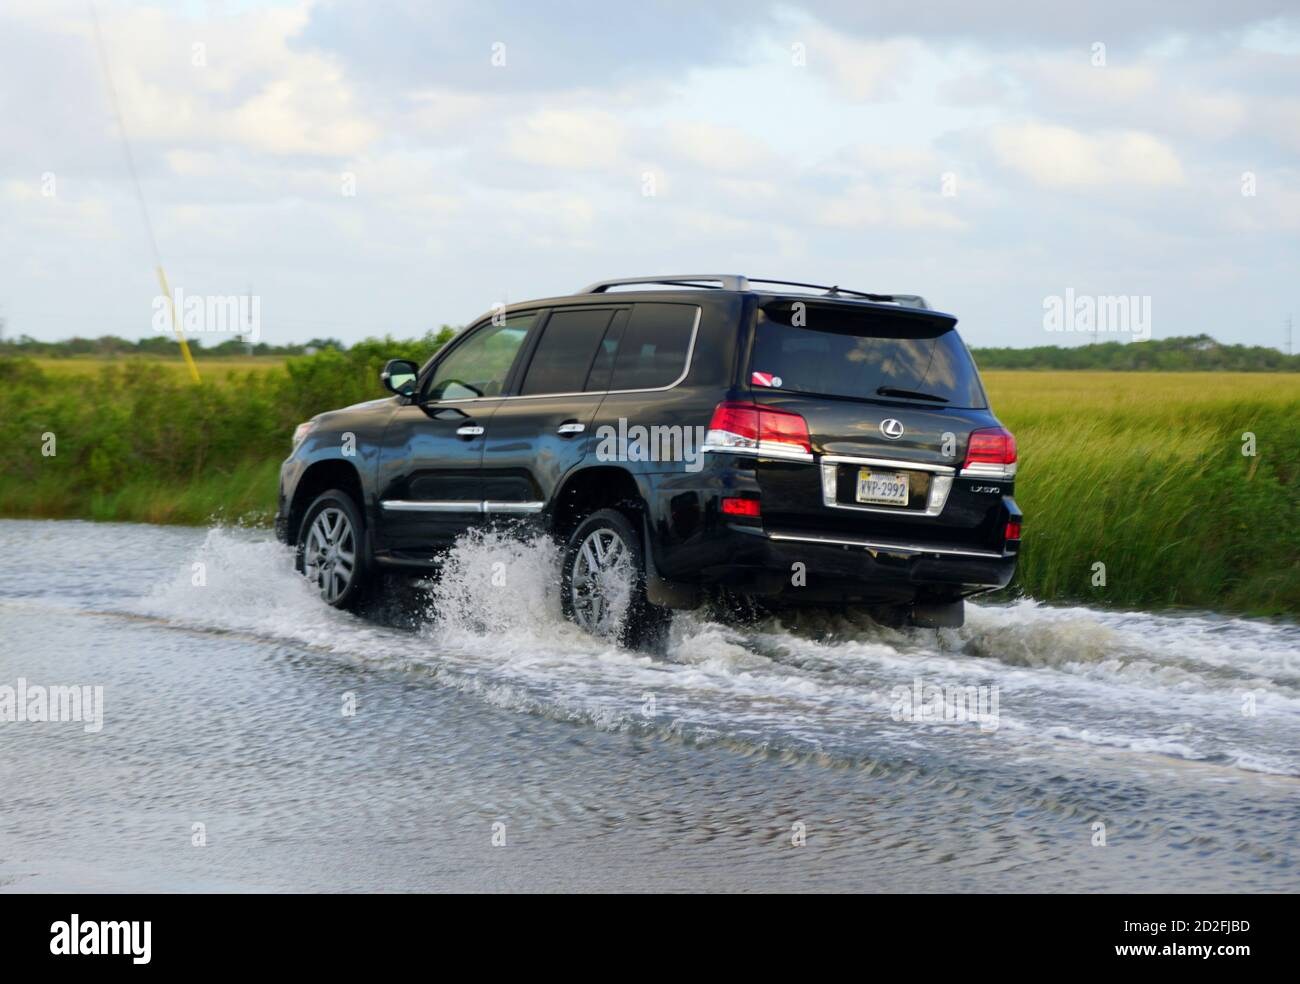 Black Lexus High Resolution Stock Photography And Images Alamy